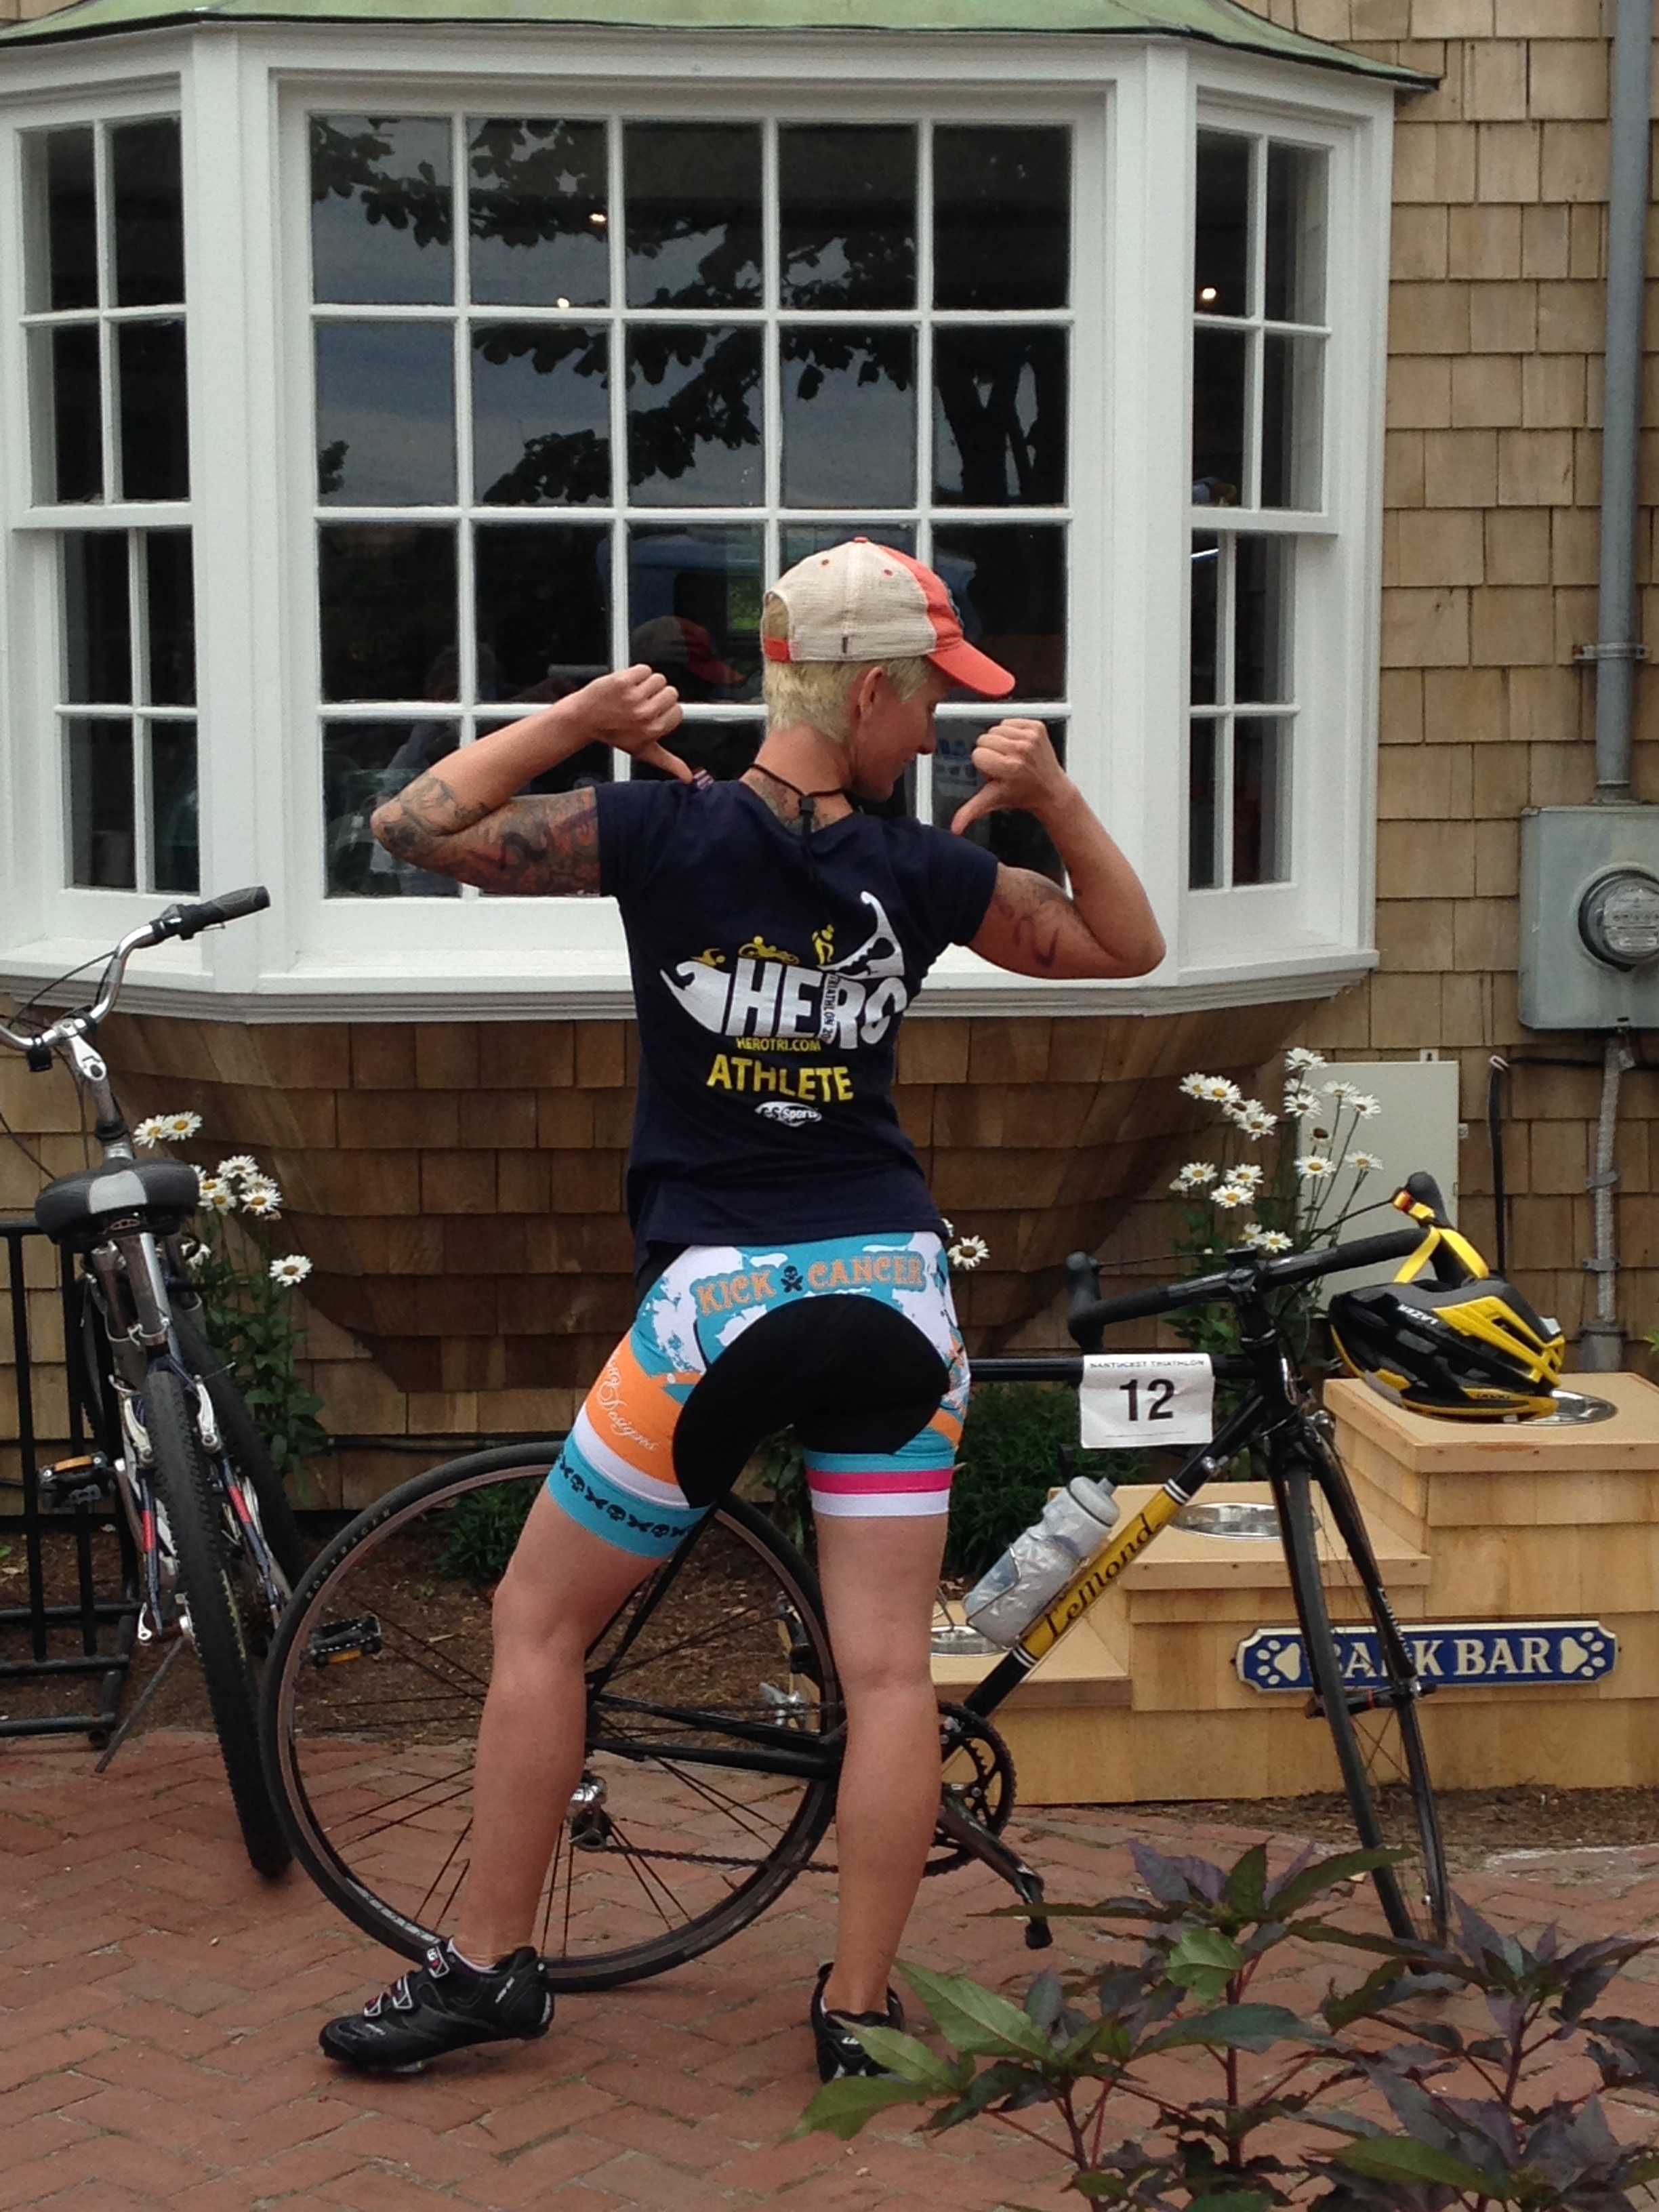 After the Nantucket Triathlon 2014, with my first road bike - a vintage steel LeMond.